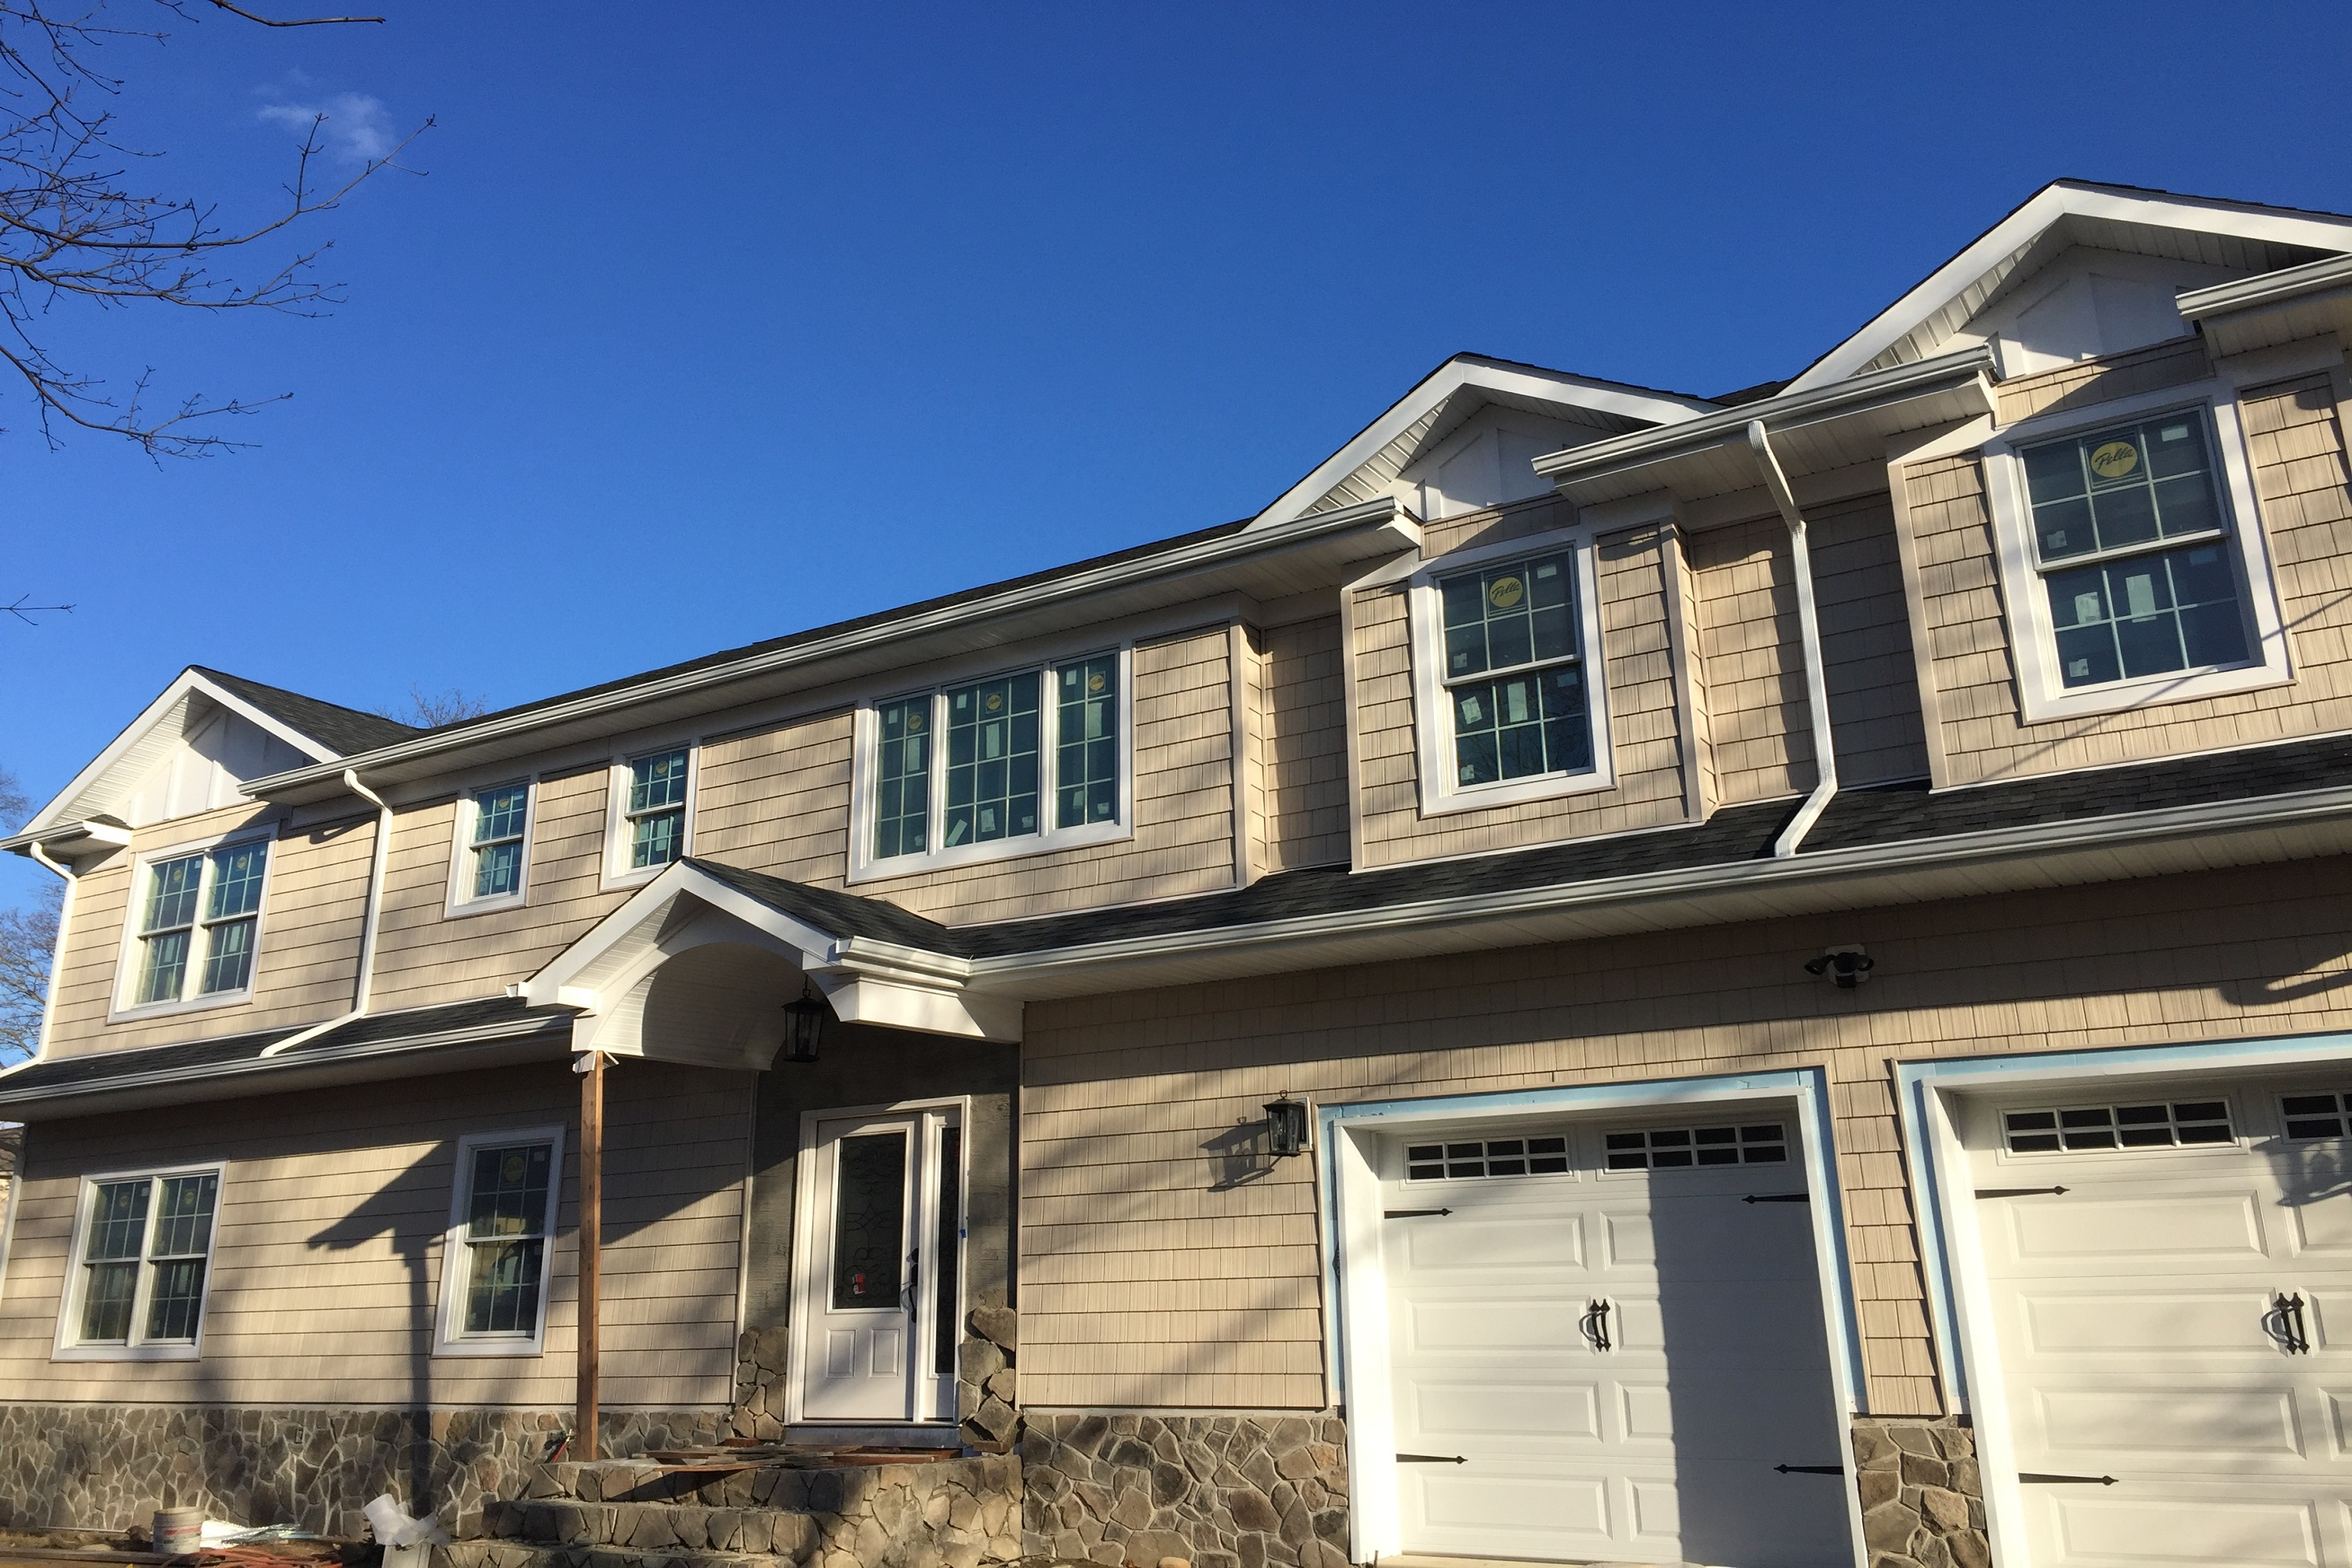 Single Family Home for Sale at New Construction! 700 Terrace Drive Paramus, New Jersey 07652 United States